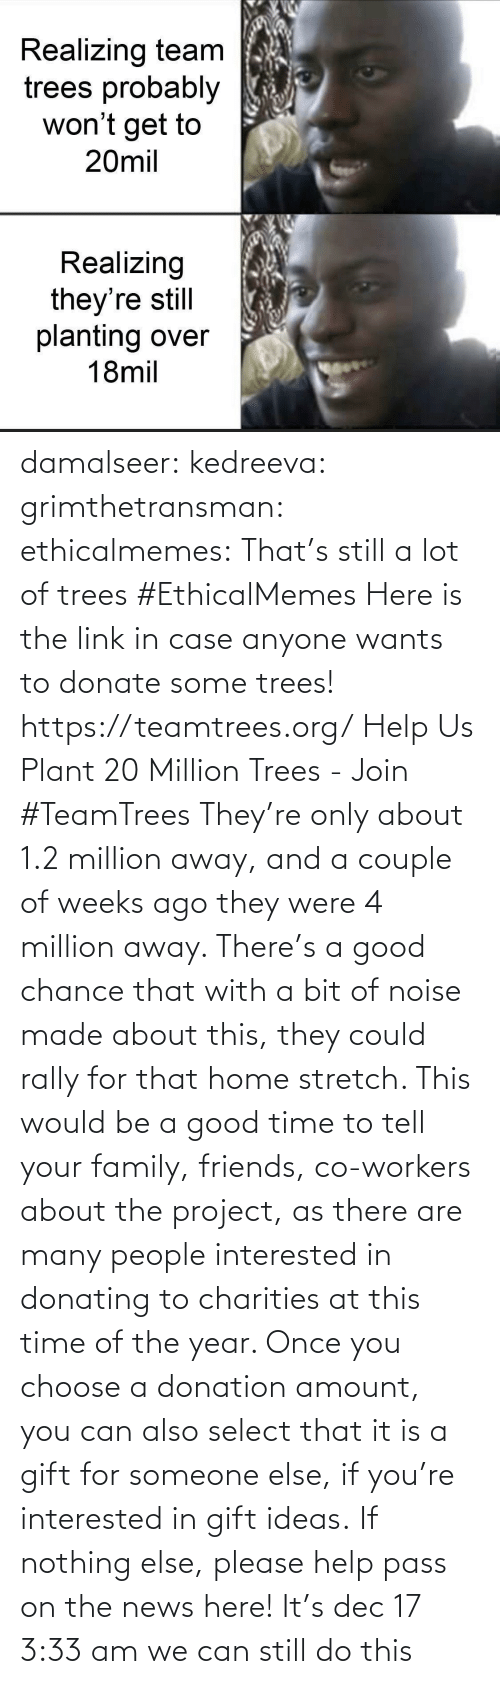 Someone Else: Realizing team  trees probably  won't get to  20mil  Realizing  they're still  planting over  18mil damalseer:  kedreeva: grimthetransman:  ethicalmemes:  That's still a lot of trees #EthicalMemes   Here is the link in case anyone wants to donate some trees!  https://teamtrees.org/ Help Us Plant 20 Million Trees - Join #TeamTrees  They're only about 1.2 million away, and a couple of weeks ago they were 4 million away. There's a good chance that with a bit of noise made about this, they could rally for that home stretch. This would be a good time to tell your family, friends, co-workers about the project, as there are many people interested in donating to charities at this time of the year. Once you choose a donation amount, you can also select that it is a gift for someone else, if you're interested in gift ideas. If nothing else, please help pass on the news here!    It's dec 17 3:33 am we can still do this